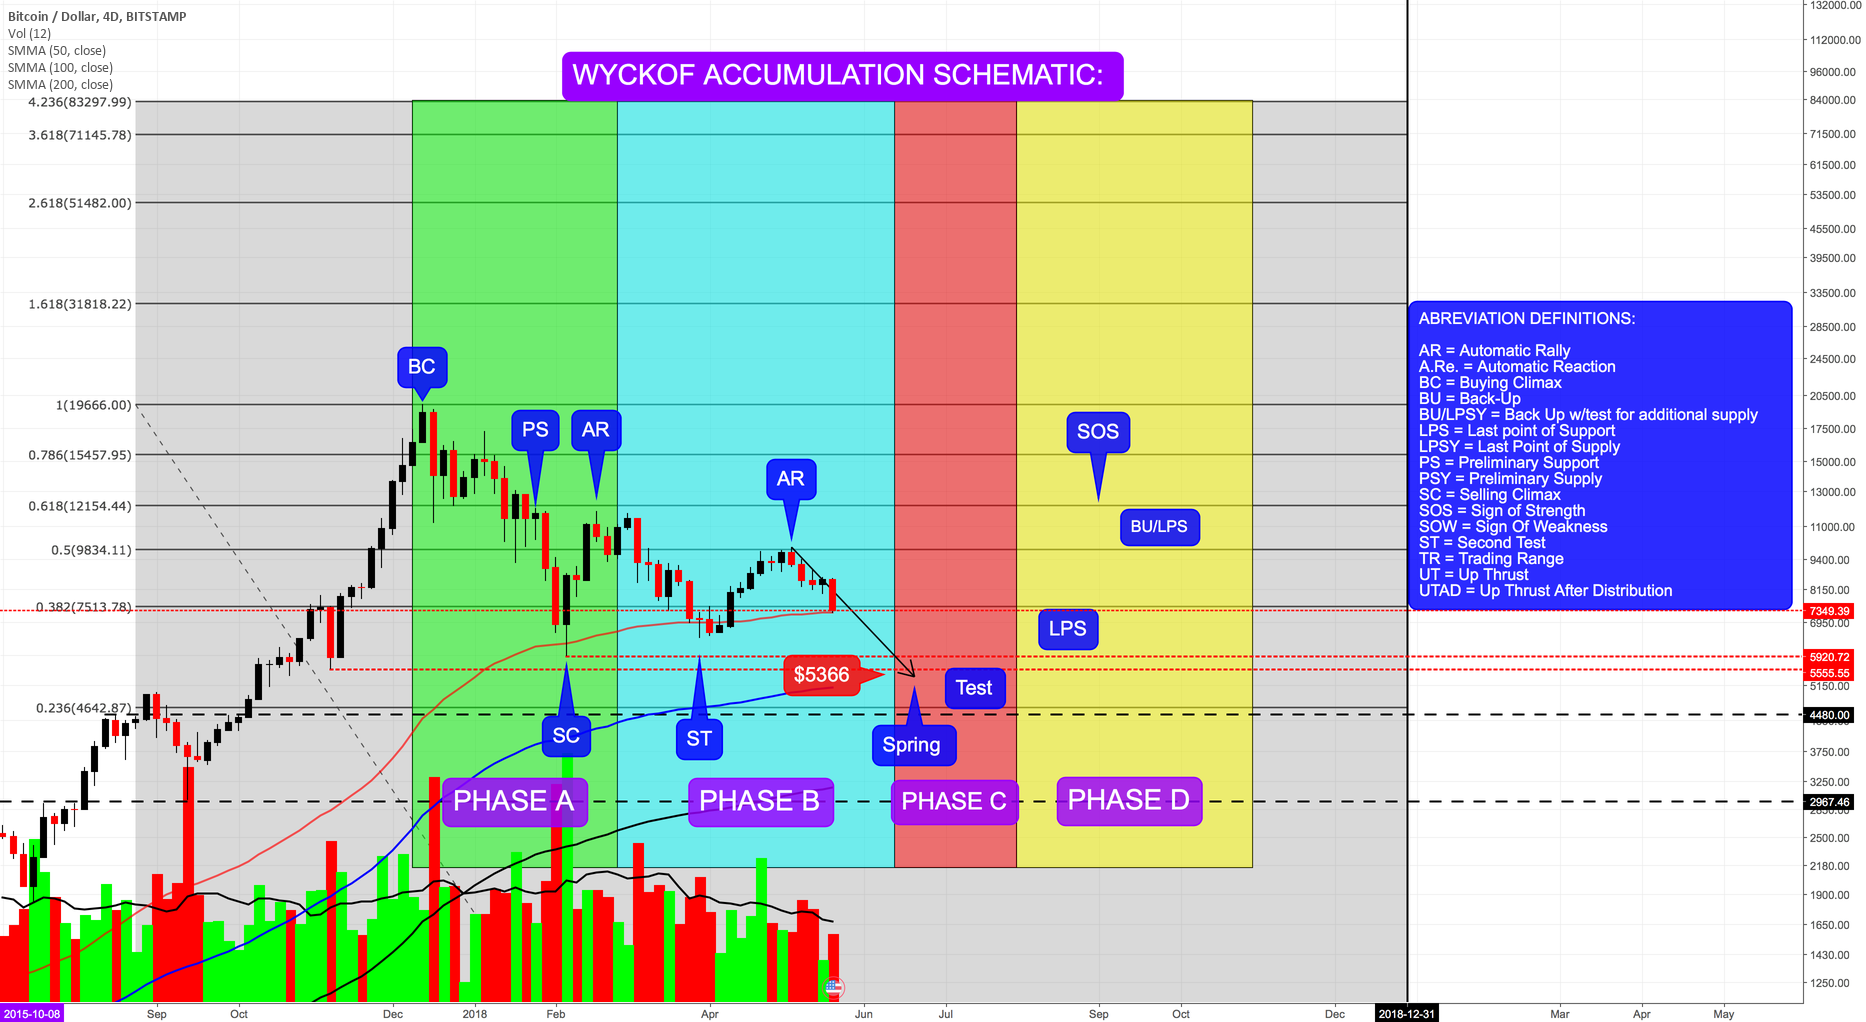 Wyckoff Accumulation Schematic - Chart pasted again in comments